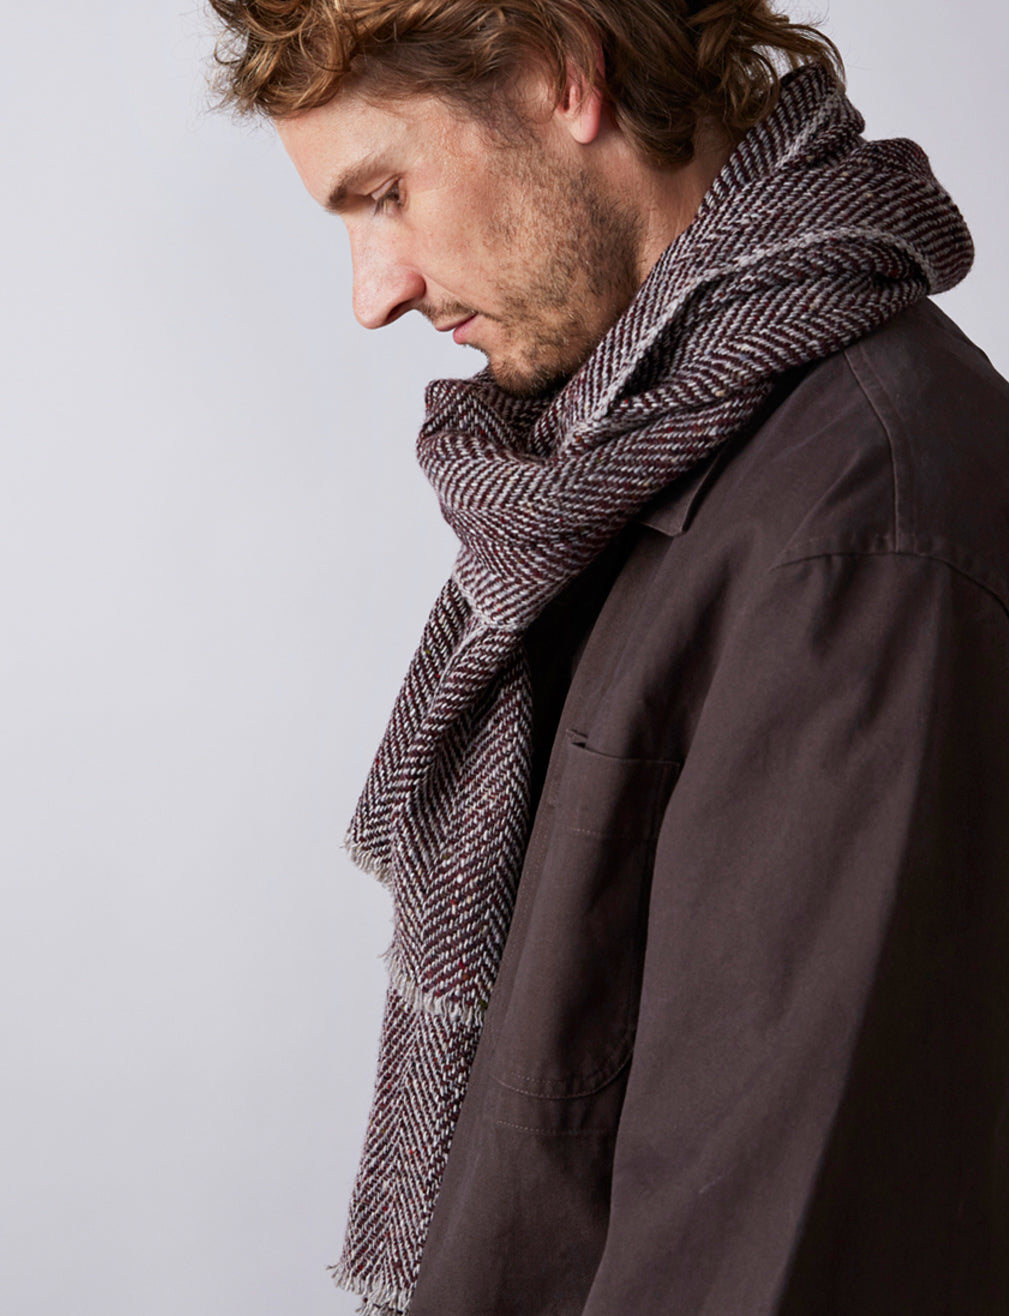 Textured Herringbone Scarf - Brown / Grey - Narrow